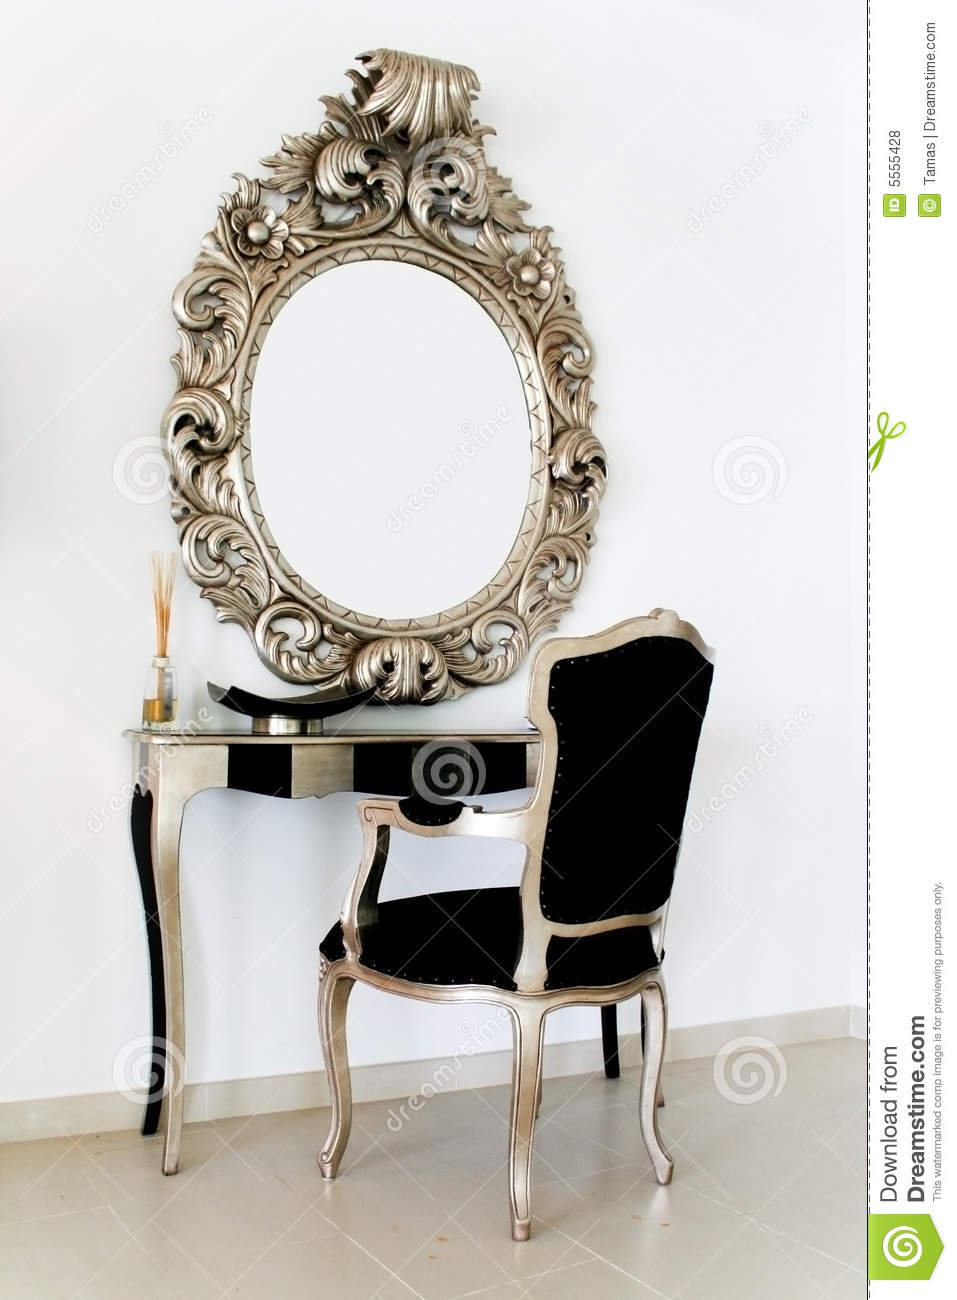 Antique Dressing Table Royalty Free Stock Photos Image